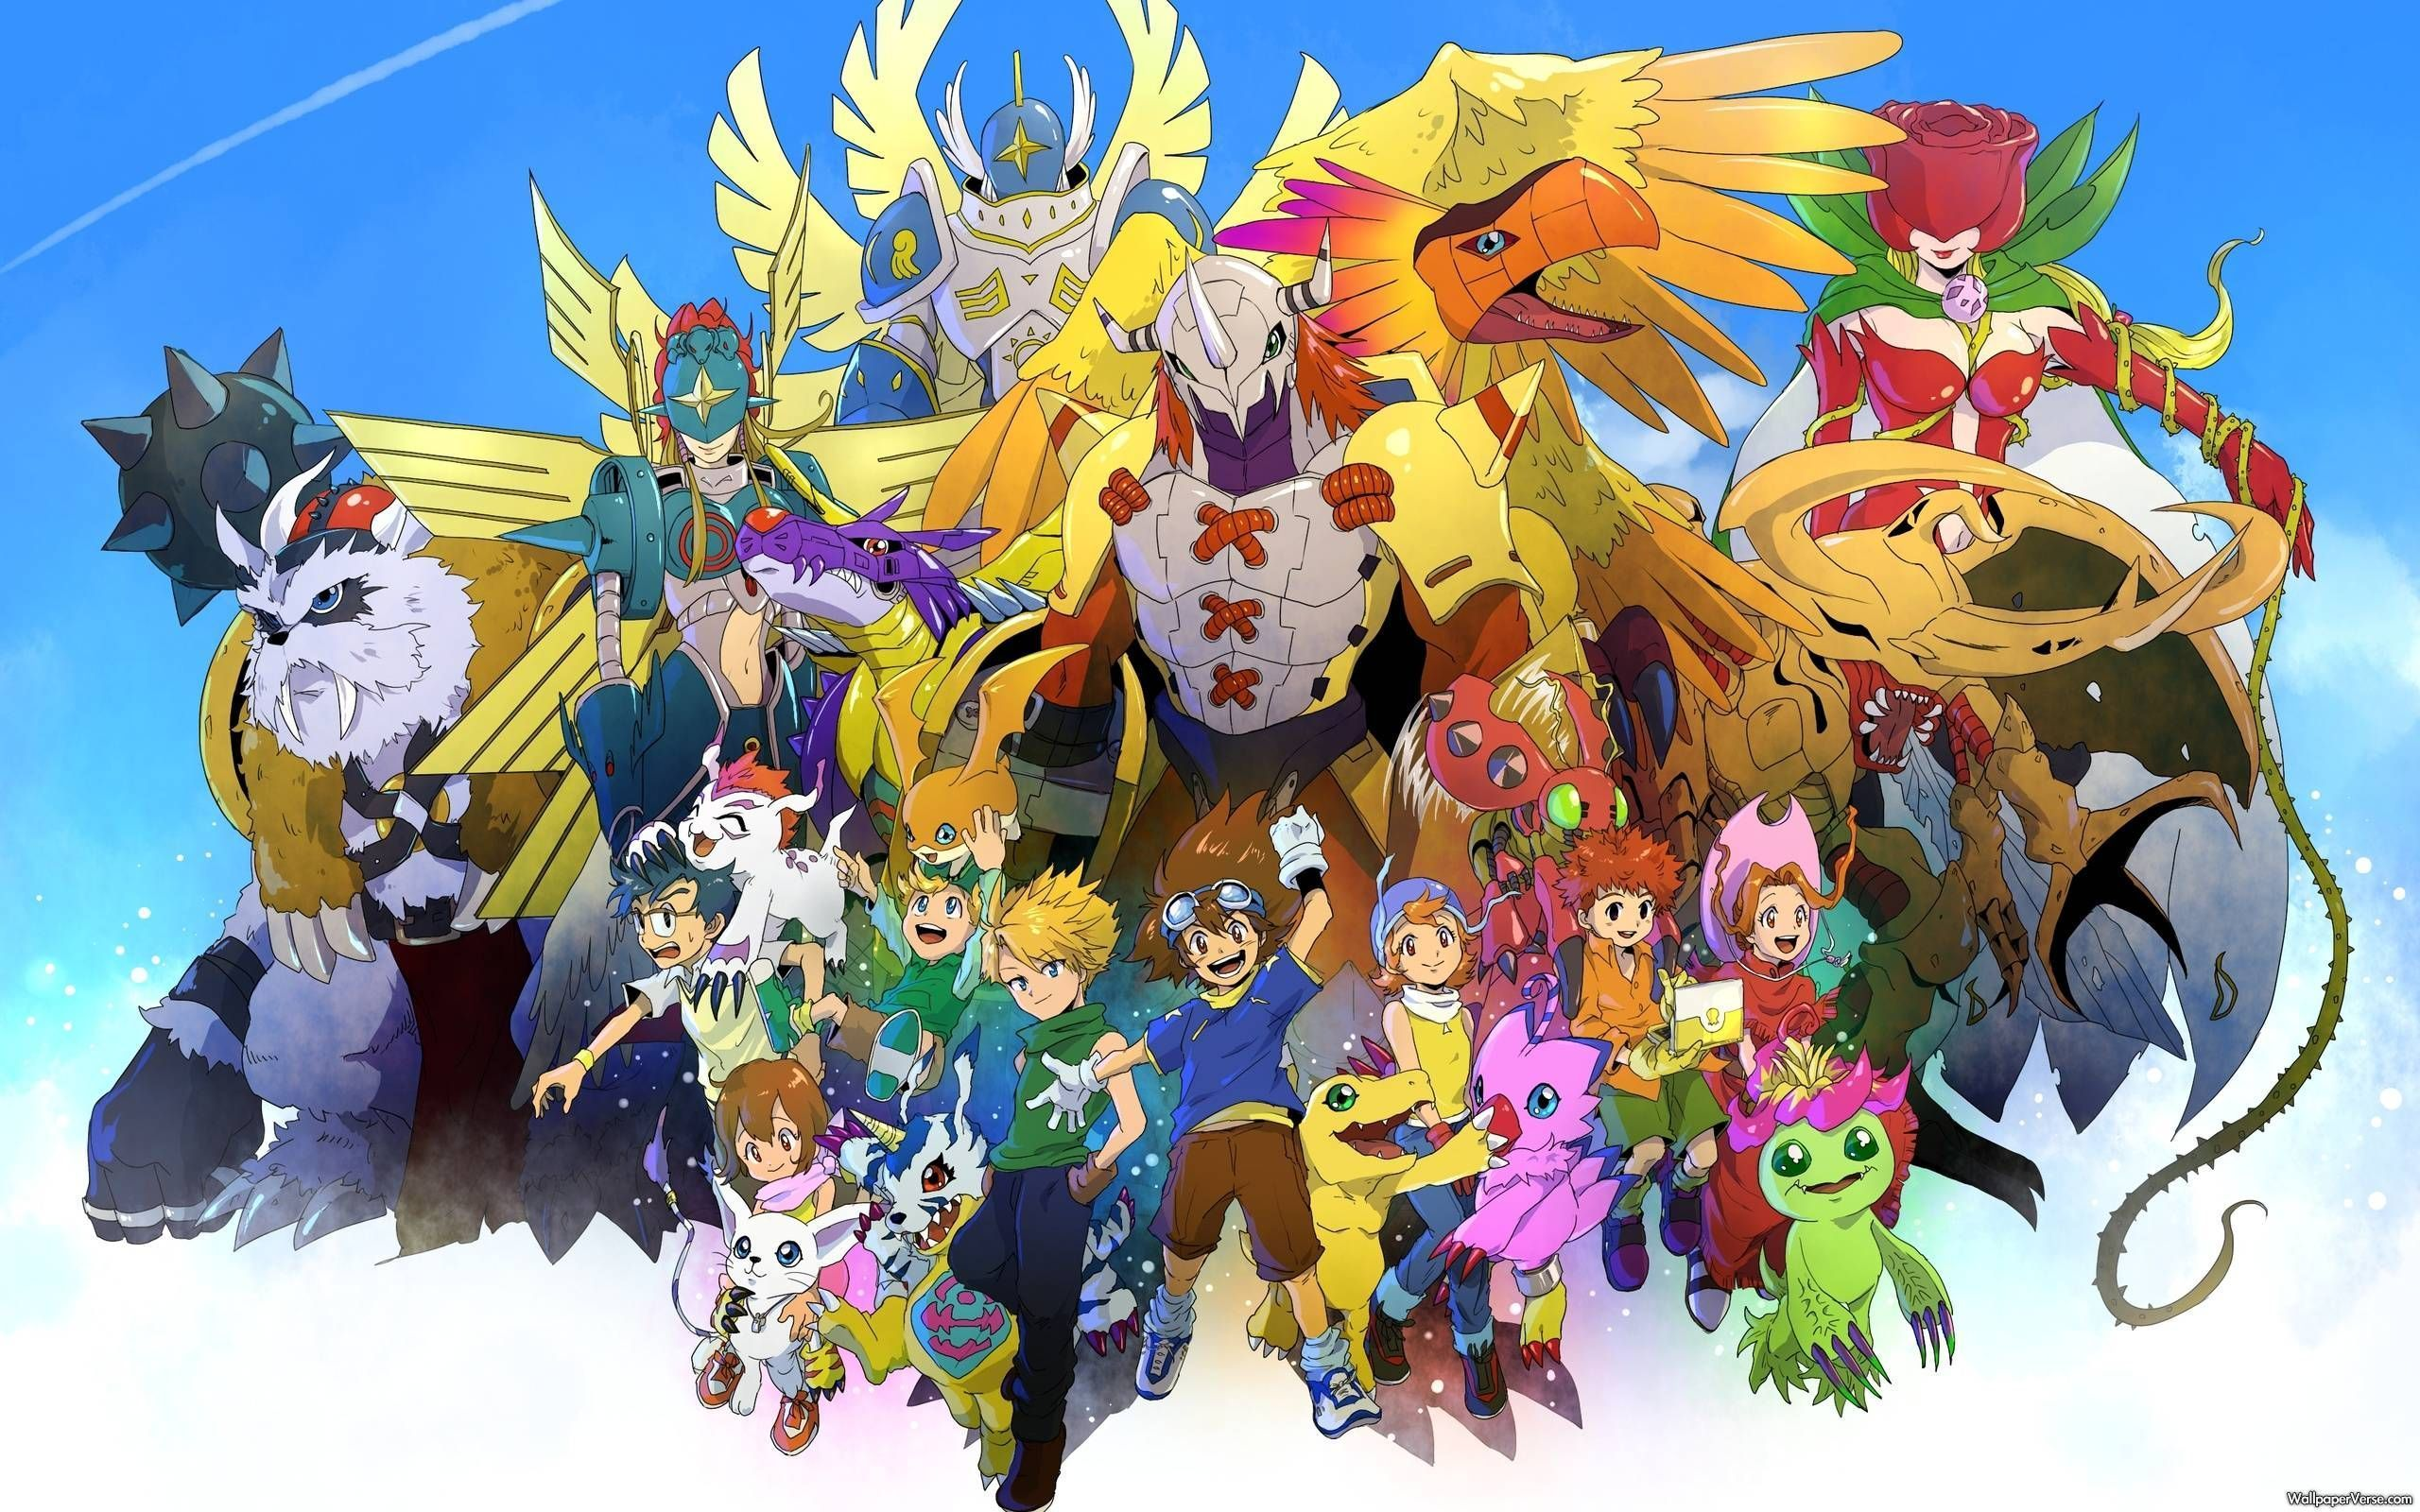 Digimon Adventure Wallpapers Top Free Digimon Adventure Backgrounds Wallpaperaccess